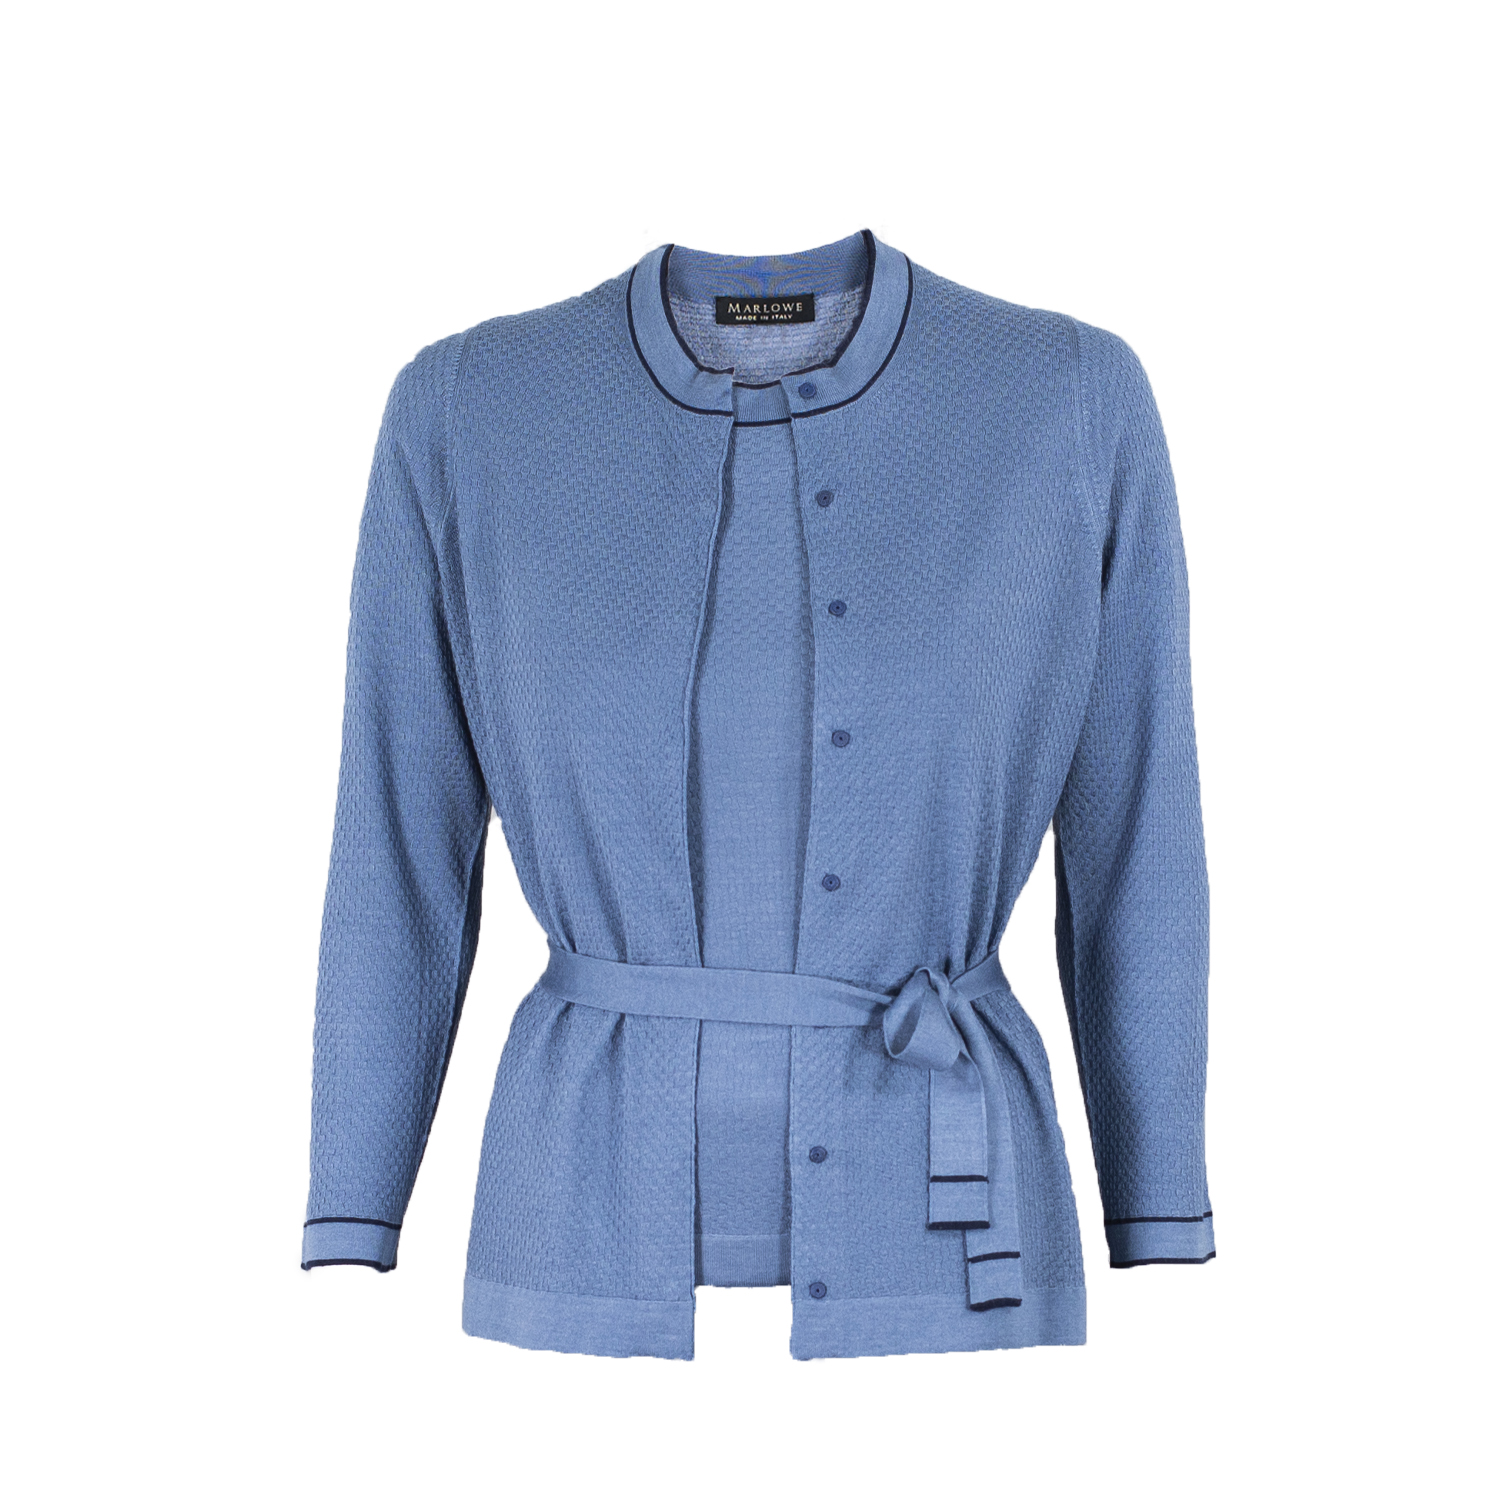 Cashmere crew neck cardigan & tee second skin - plaster blue with indigo blue trim.jpg